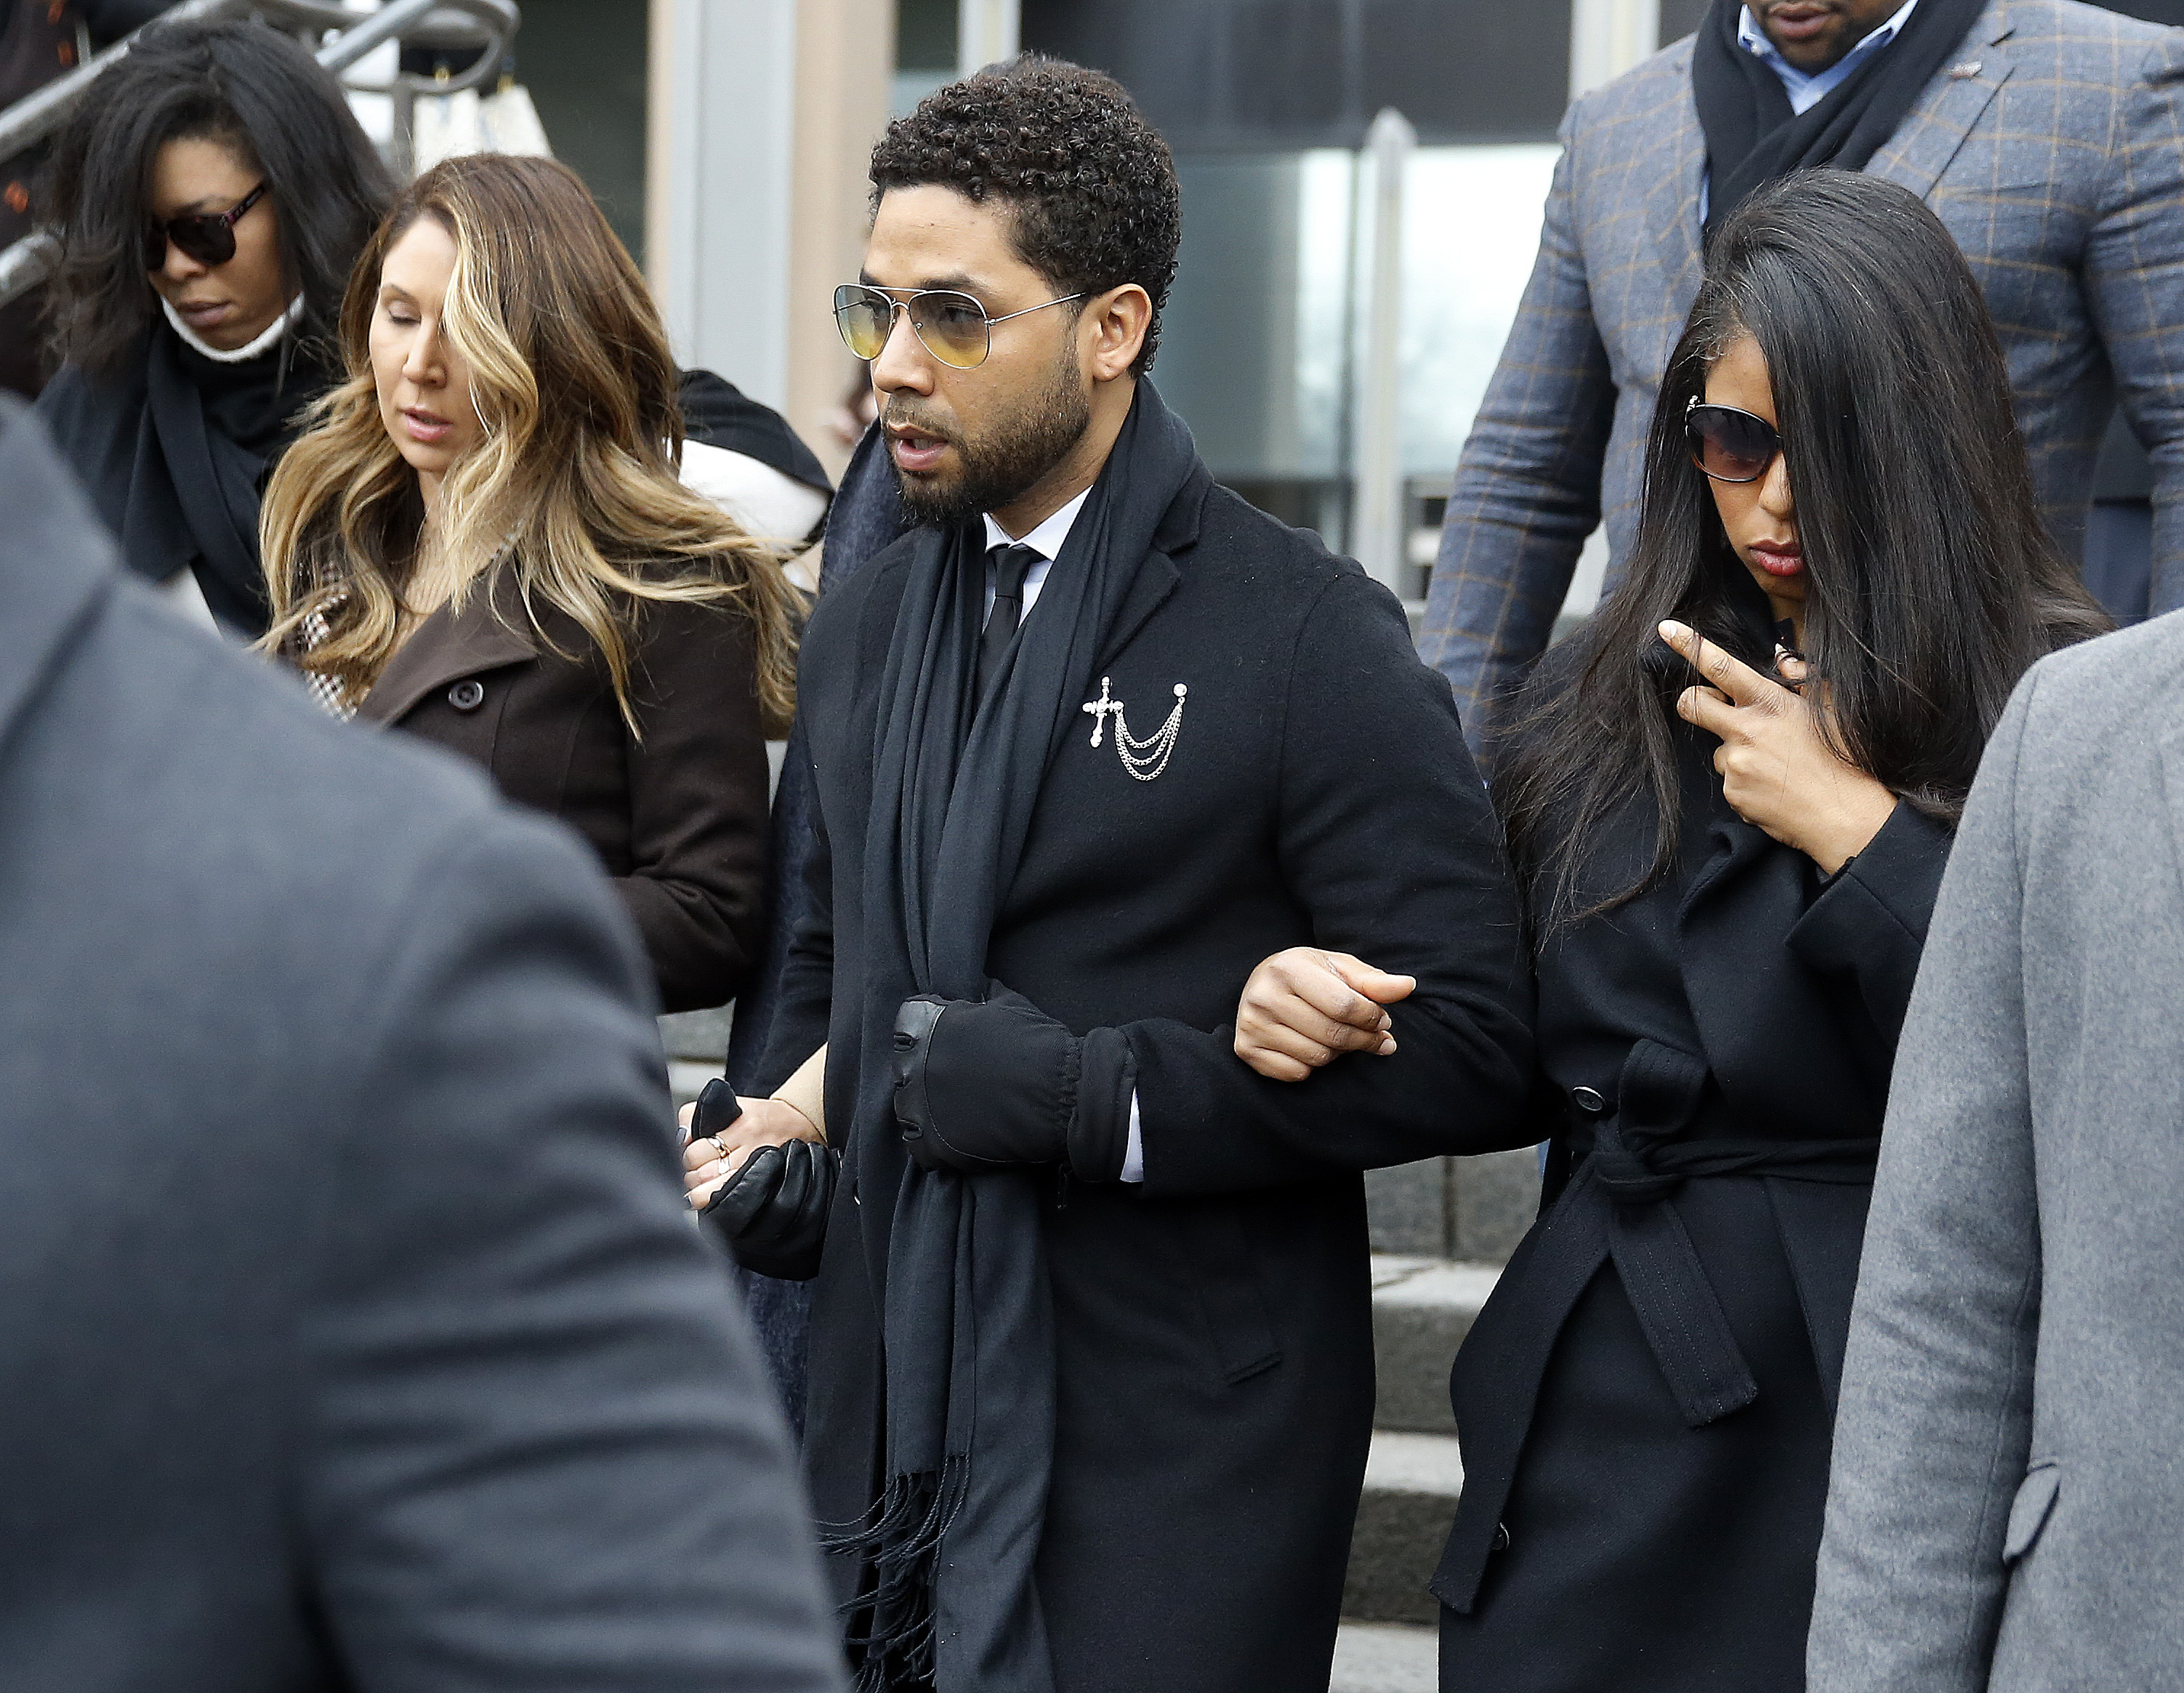 Flanked by attorneys and supporters, actor Jussie Smollett walks out of the Leighton Criminal Courthouse today after pleading not guilty to a new indictment on February 24, 2020 in Chicago, Illinois. (Photo by Nuccio DiNuzzo/Getty Images)